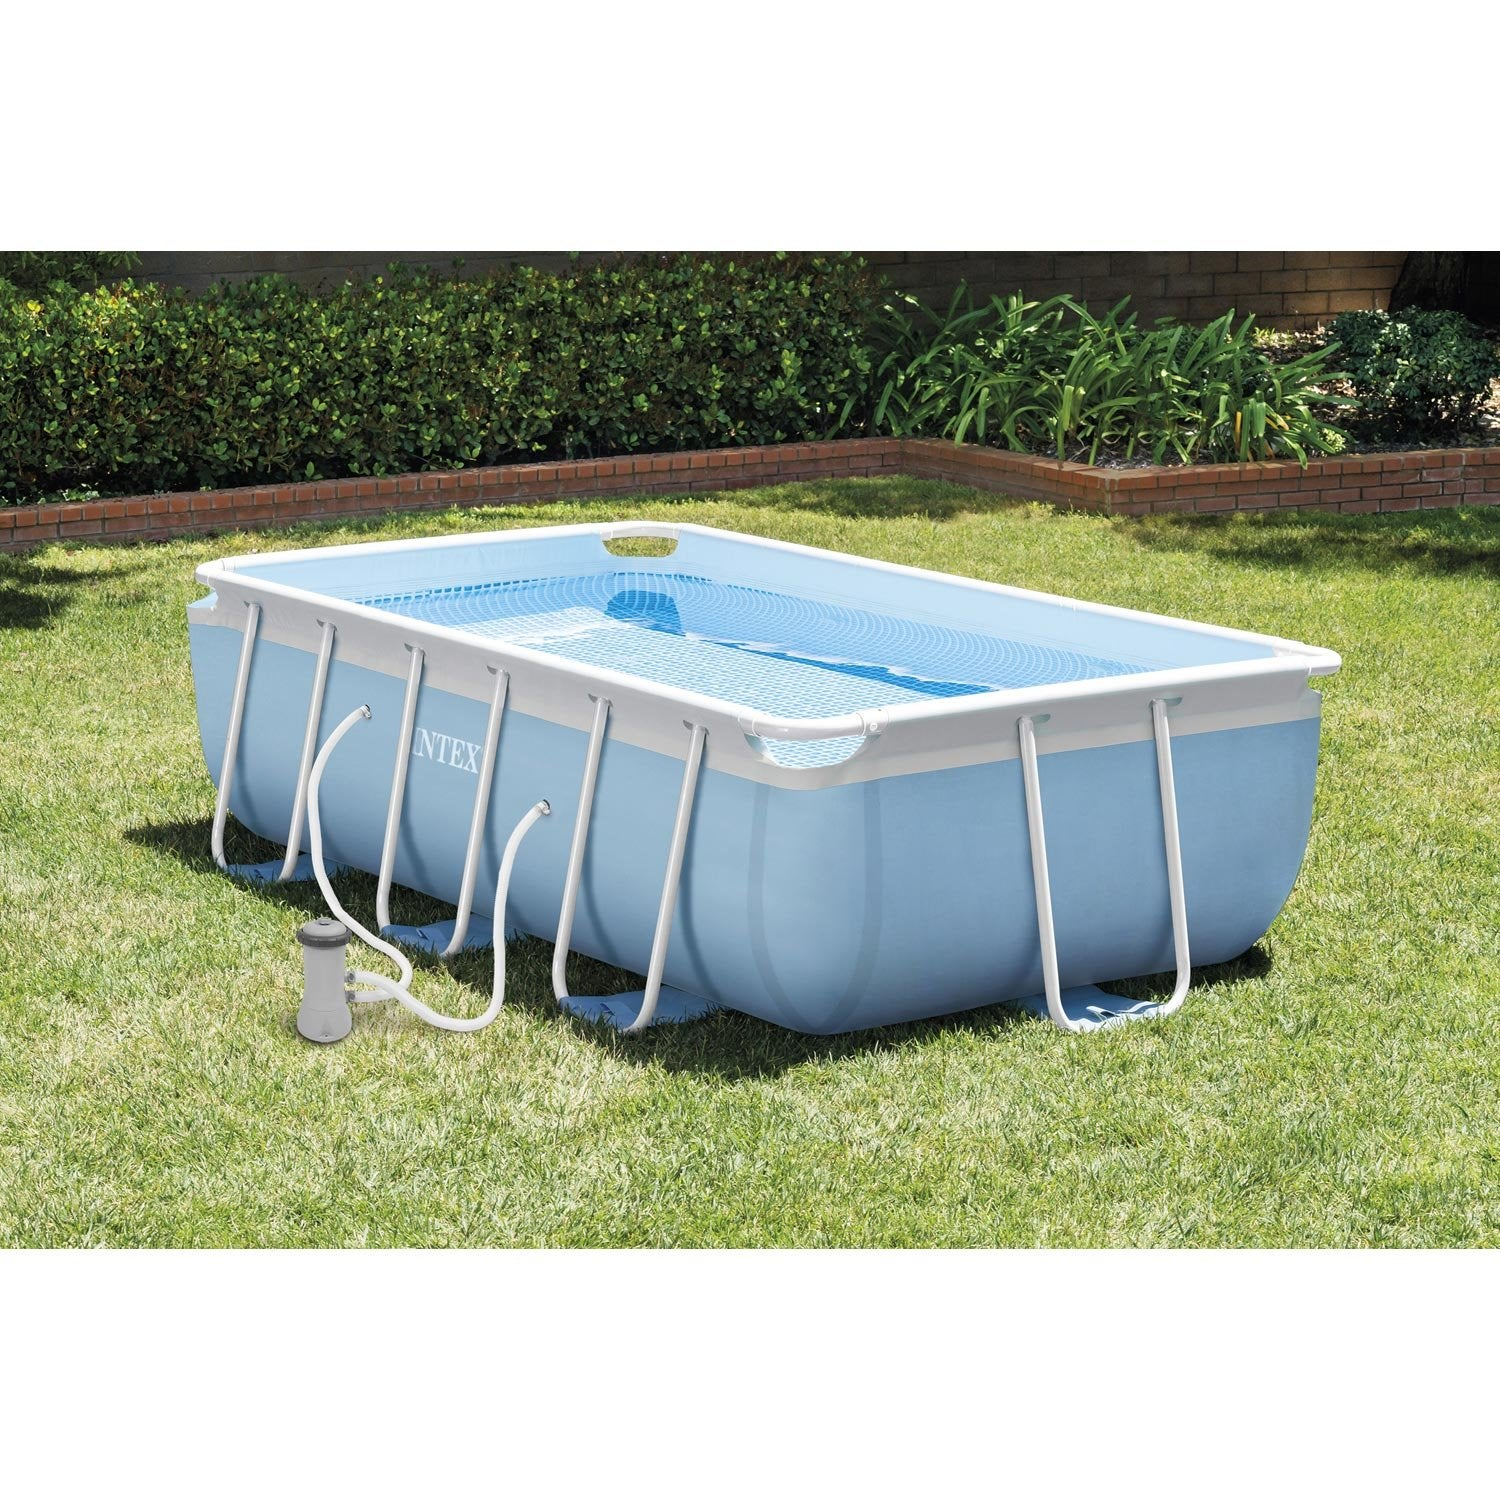 Piscine hors sol autoportante tubulaire prism frame intex for Piscine hors sol rigide